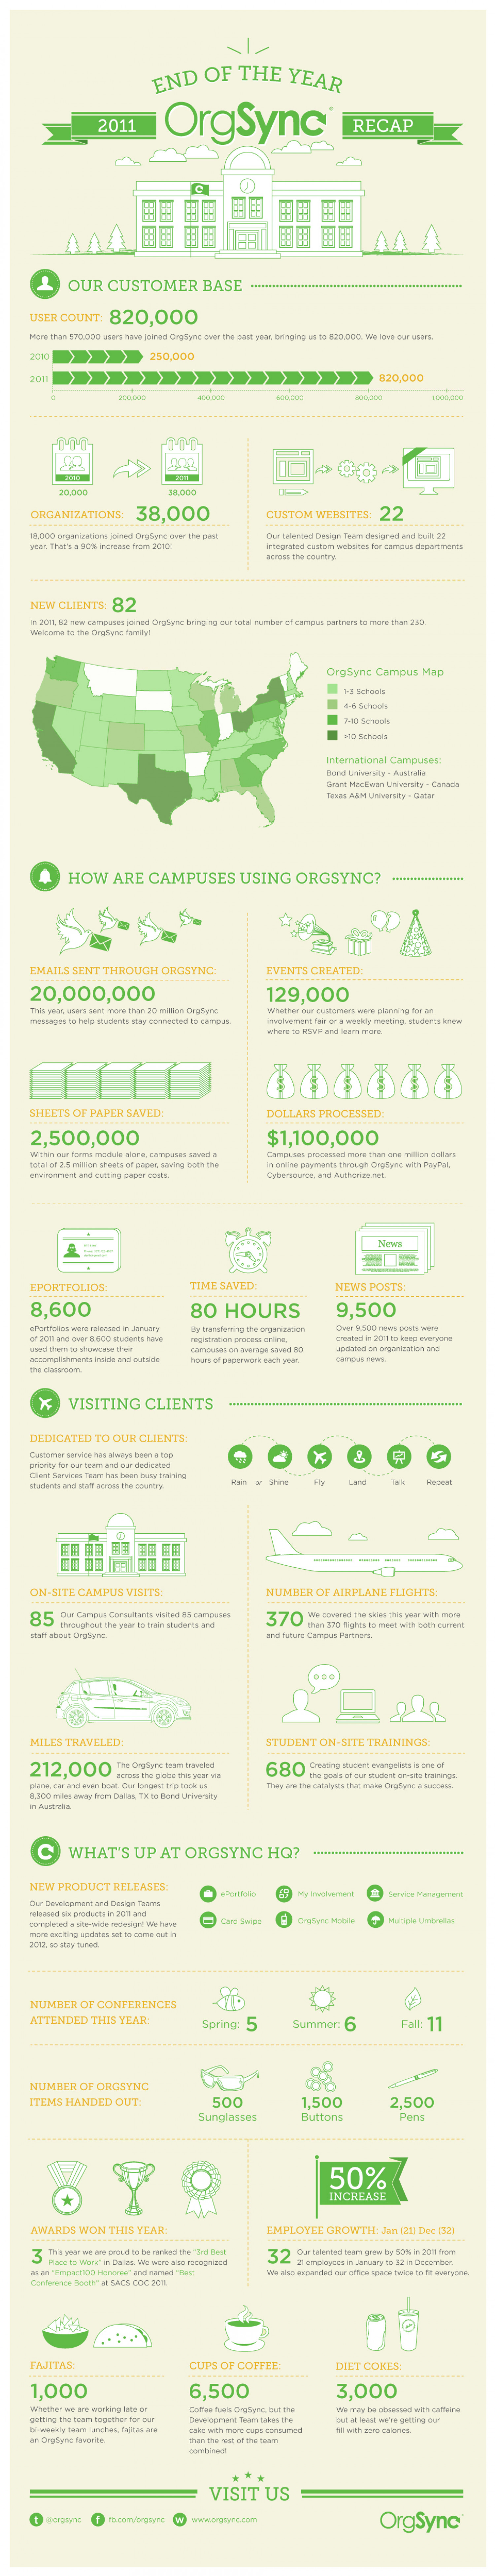 OrgSync's 2011 End of The Year Recap Infographic